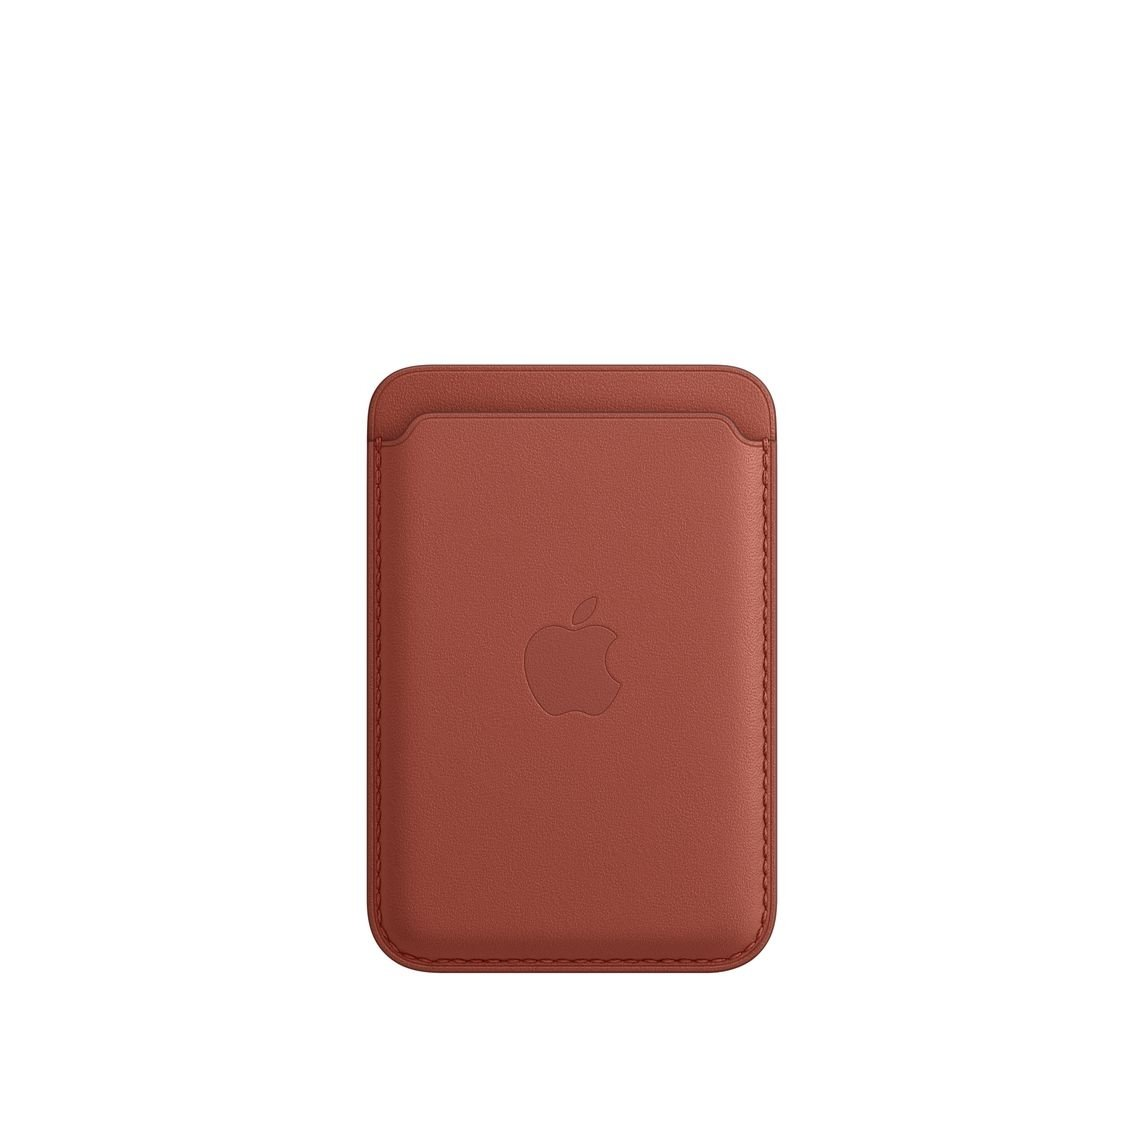 Apple launches new MagSafe cases and wallet colors for spring